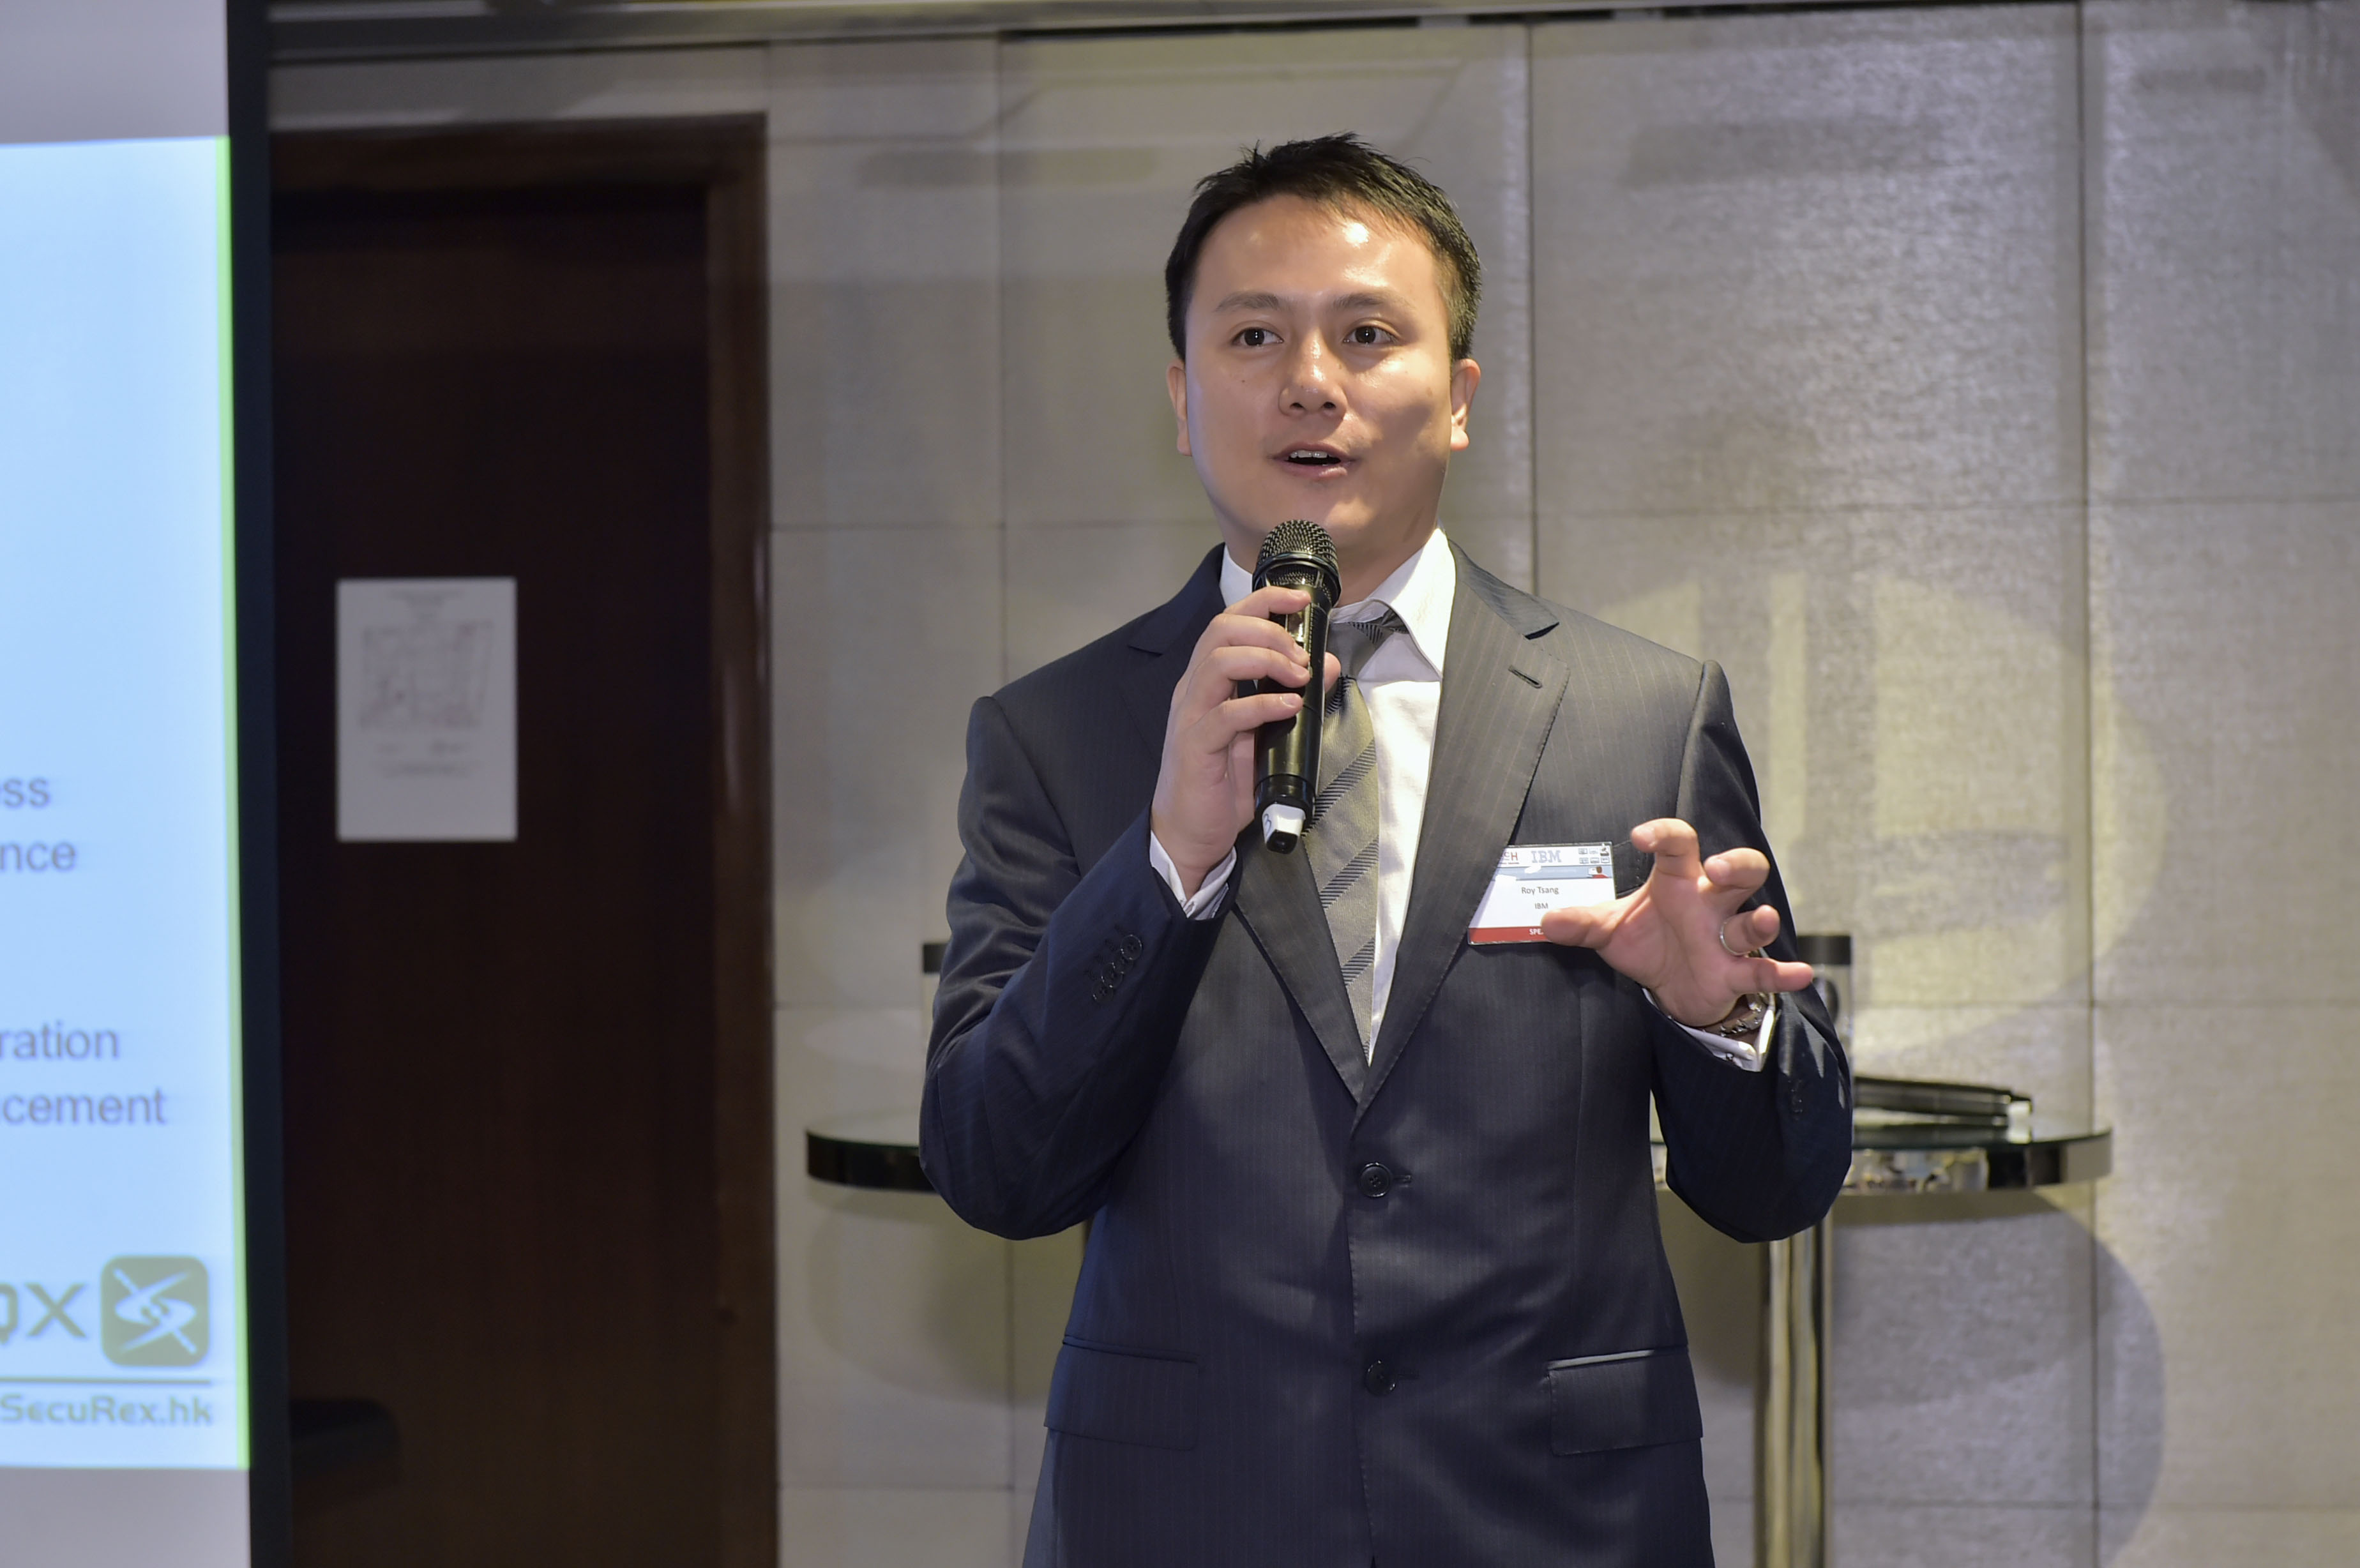 Roy Tsang, head of storage & software defined infrastructure, IBM China/HK